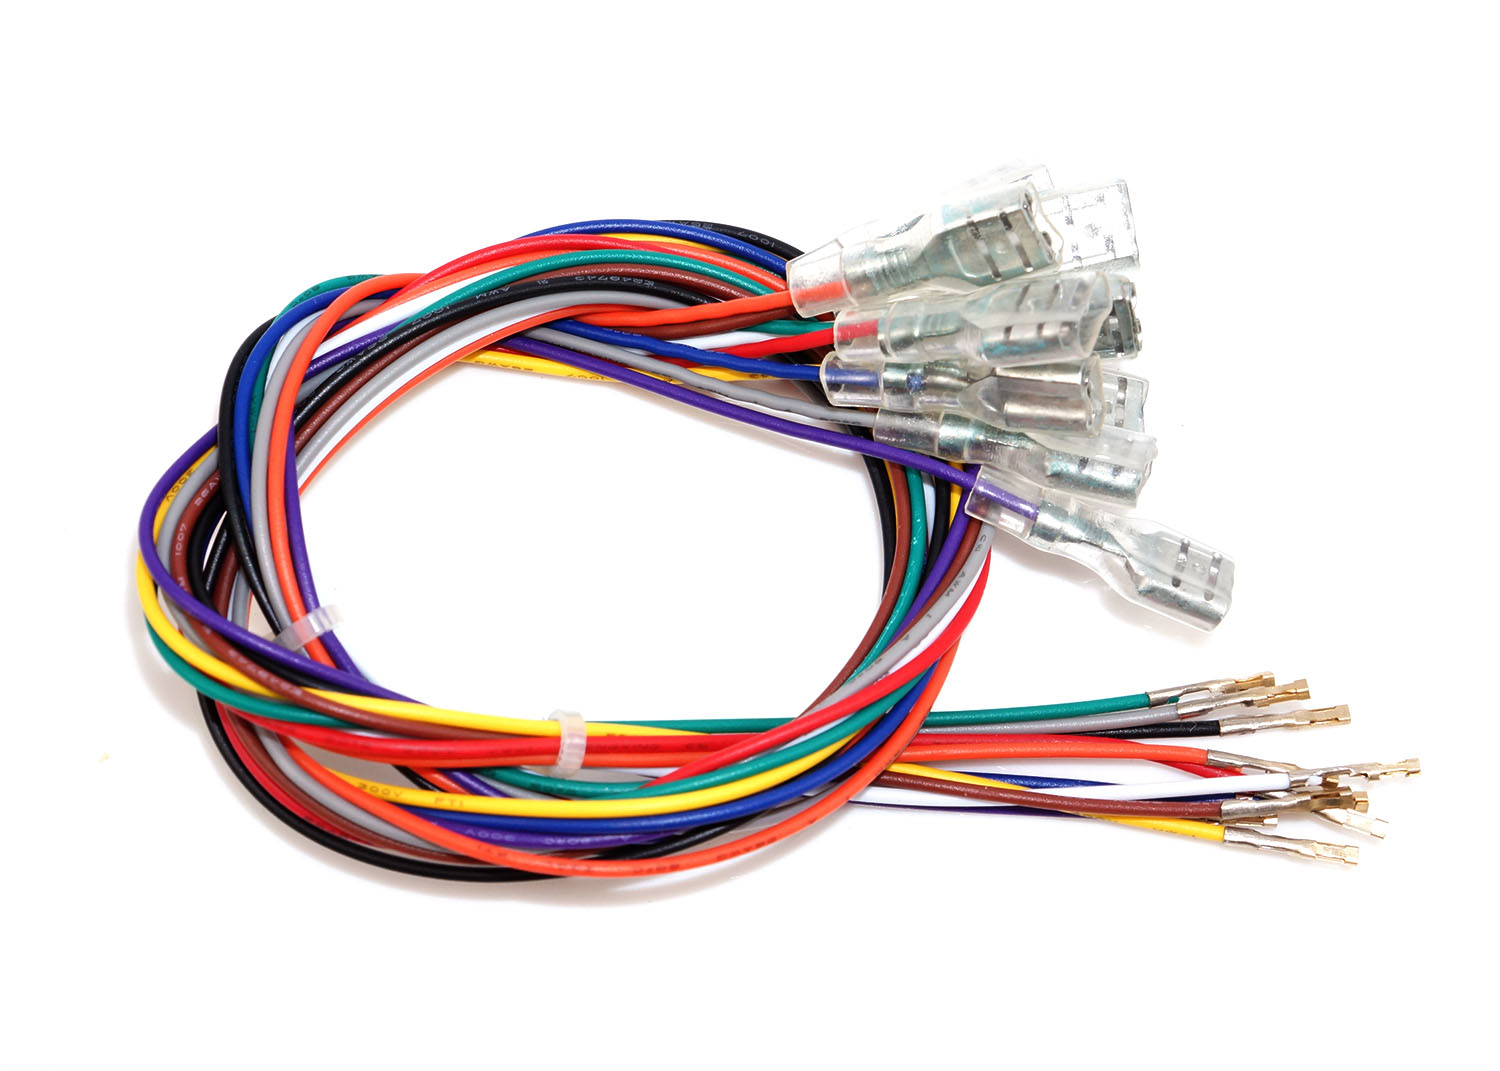 hight resolution of home wire electrical ultimarc pacled64 10 wire harness